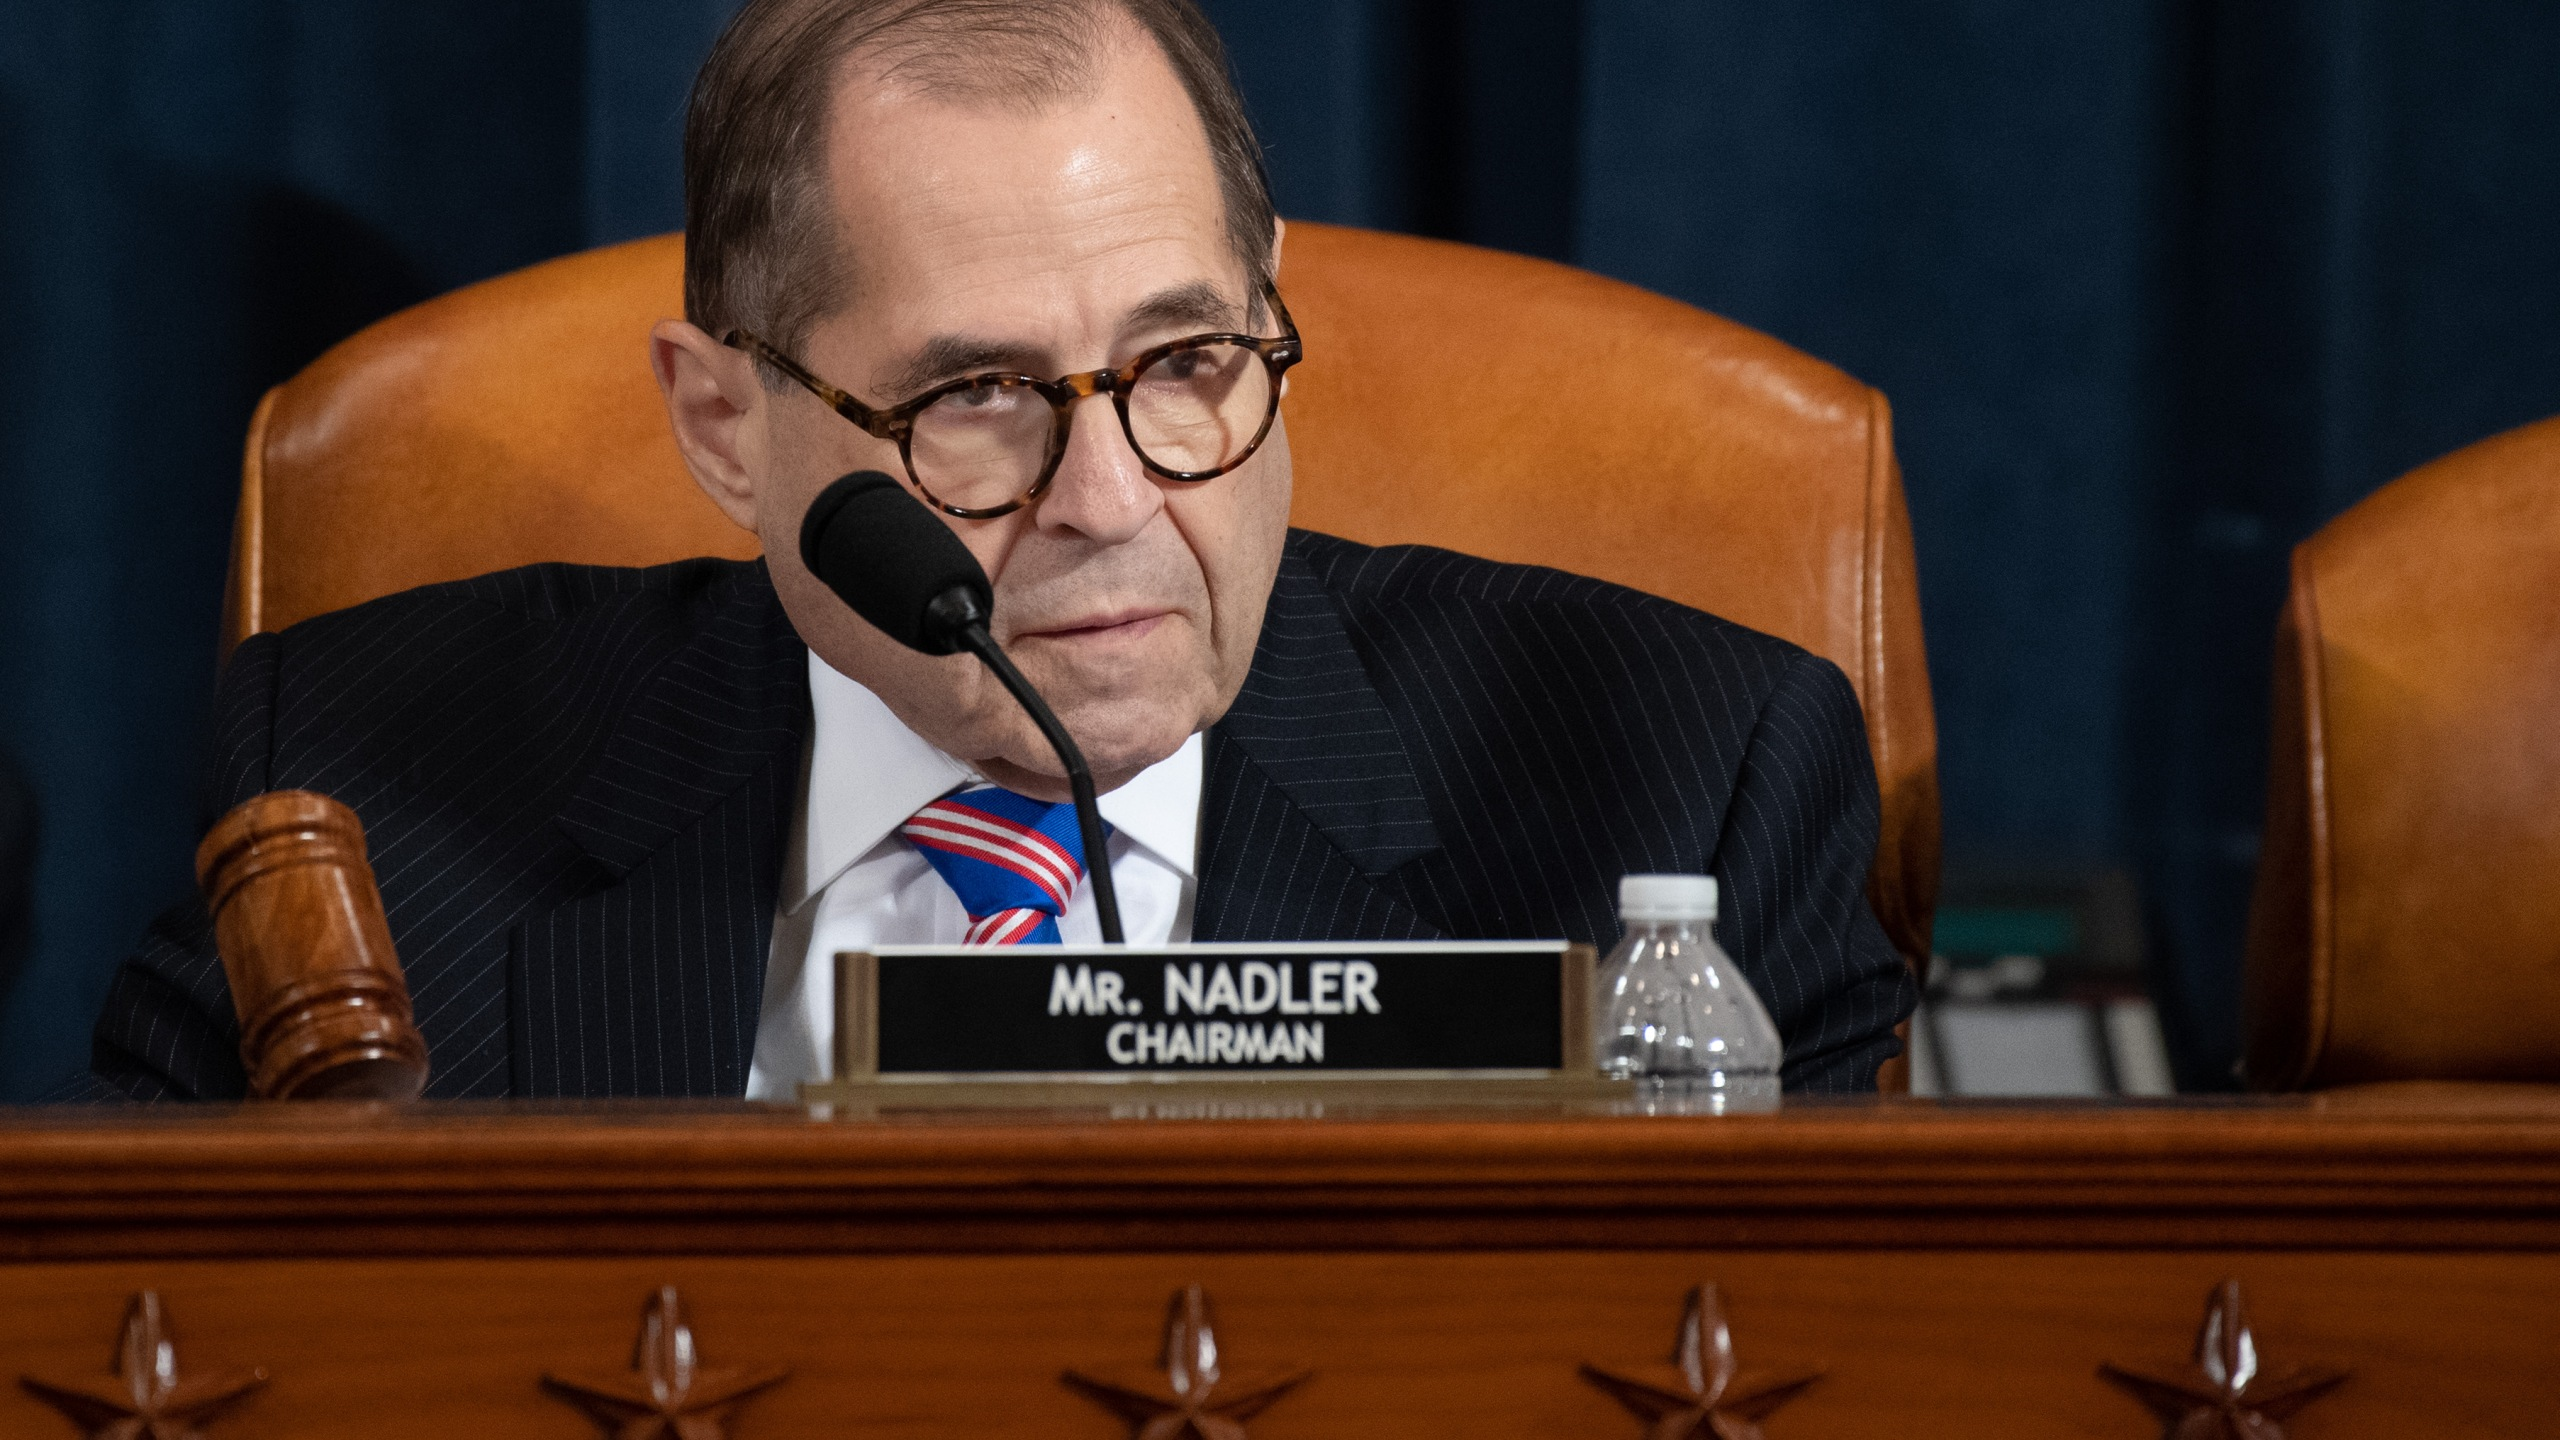 House Judiciary Chairman Rep. Jerry Nadler (D-NY) speaks during testimony by constitutional scholars before the House Judiciary Committee in the Longworth House Office Building on Capitol Hill Dec. 4, 2019, in Washington, D.C. (Credit: Saul Loeb-Pool/Getty Images)